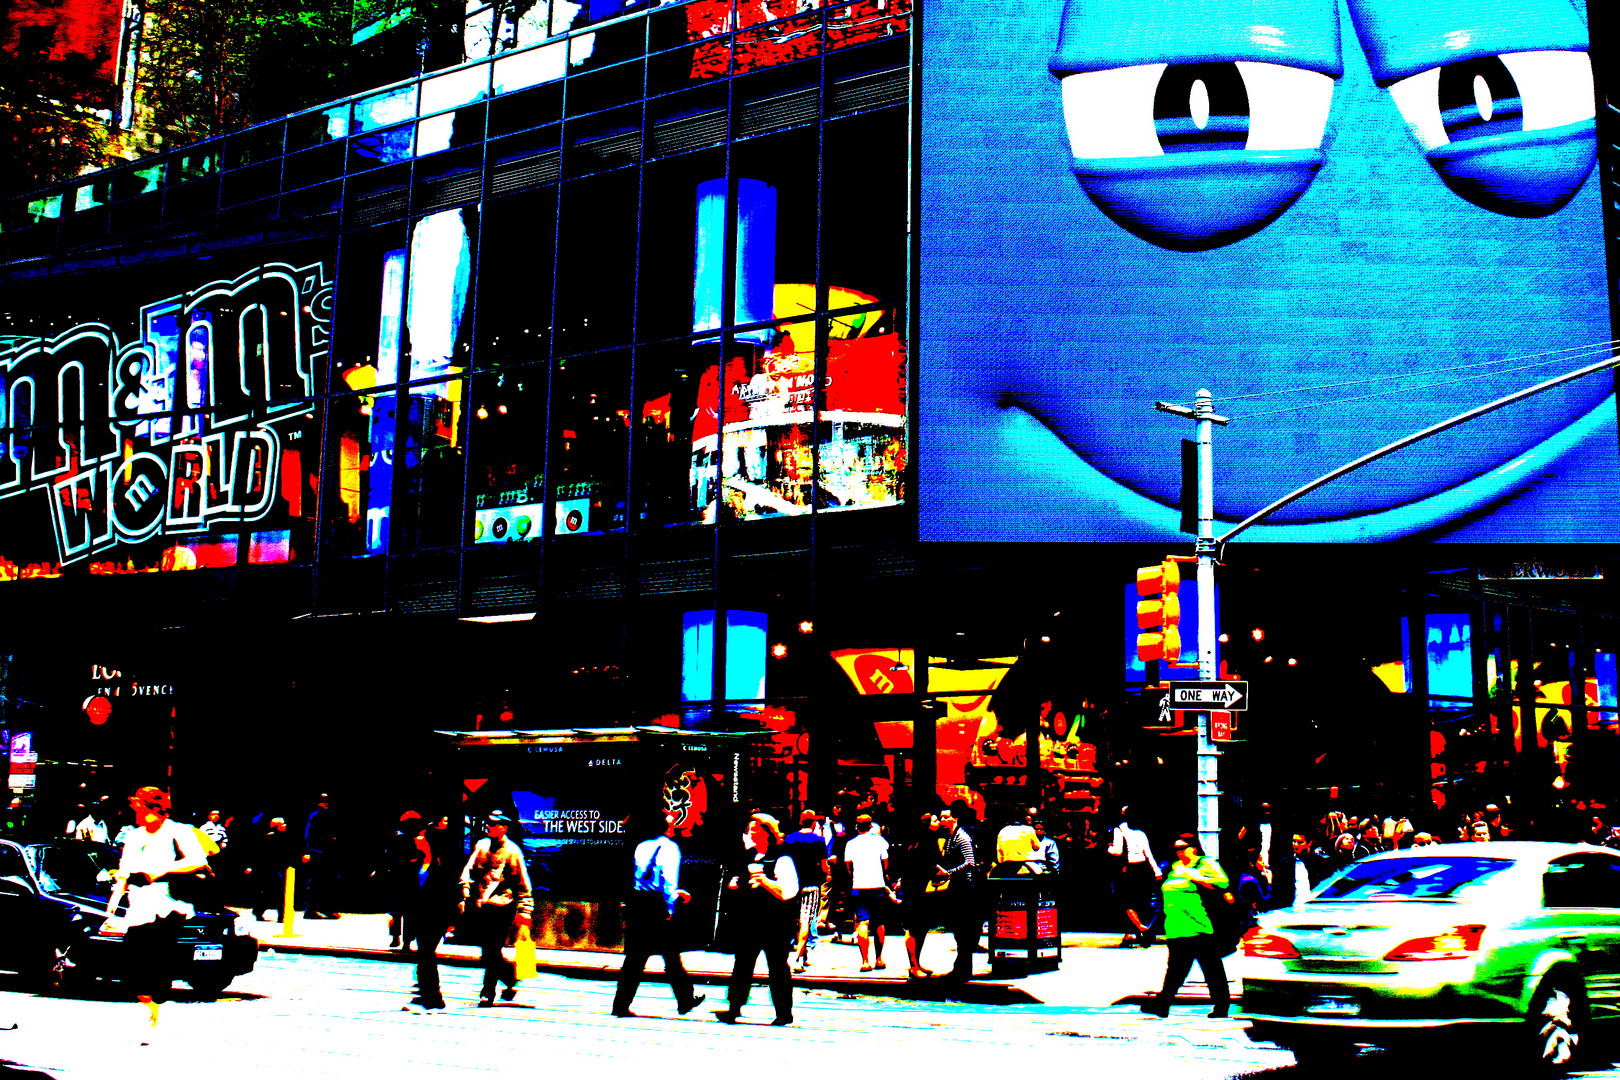 M&M's Times Square New York City